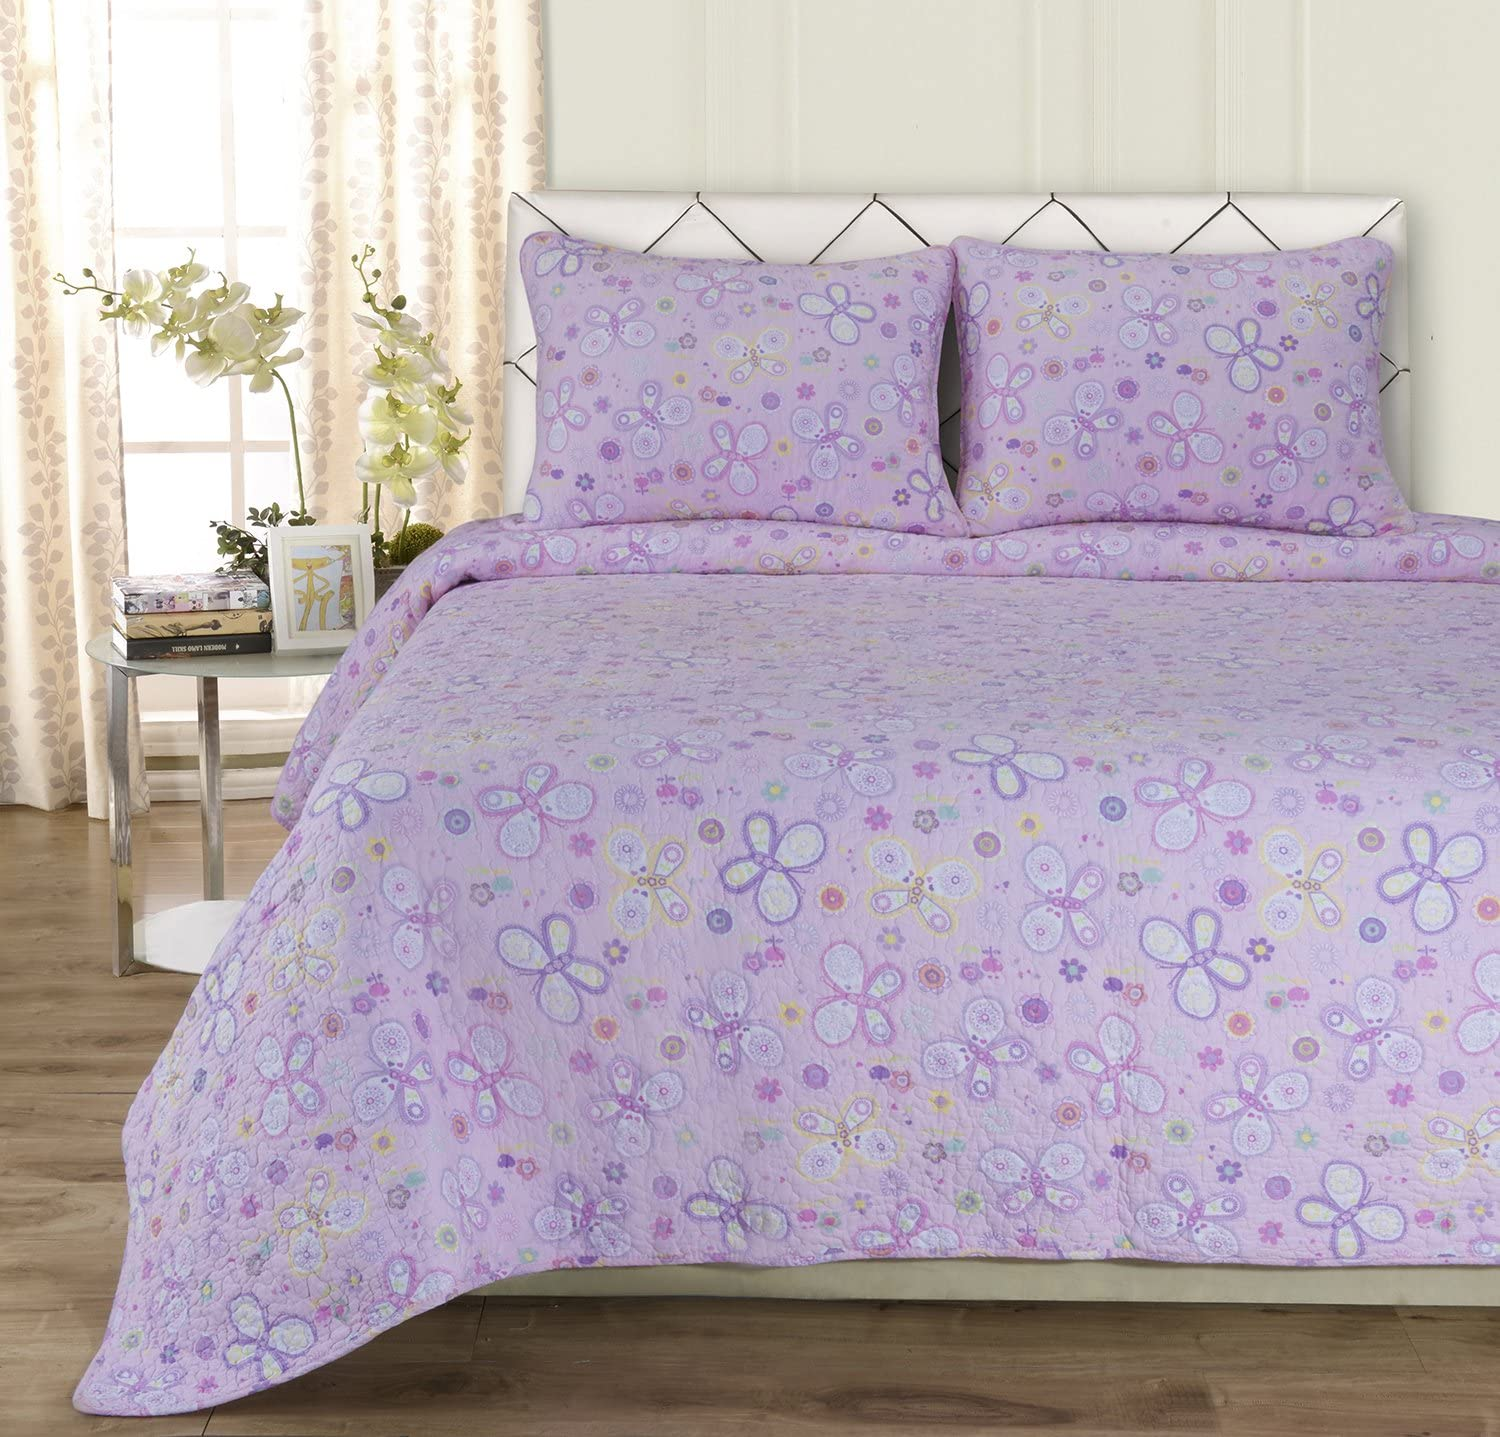 Superior Amy 100% Cotton High quality new Full Quilt Set Queen Fashionable